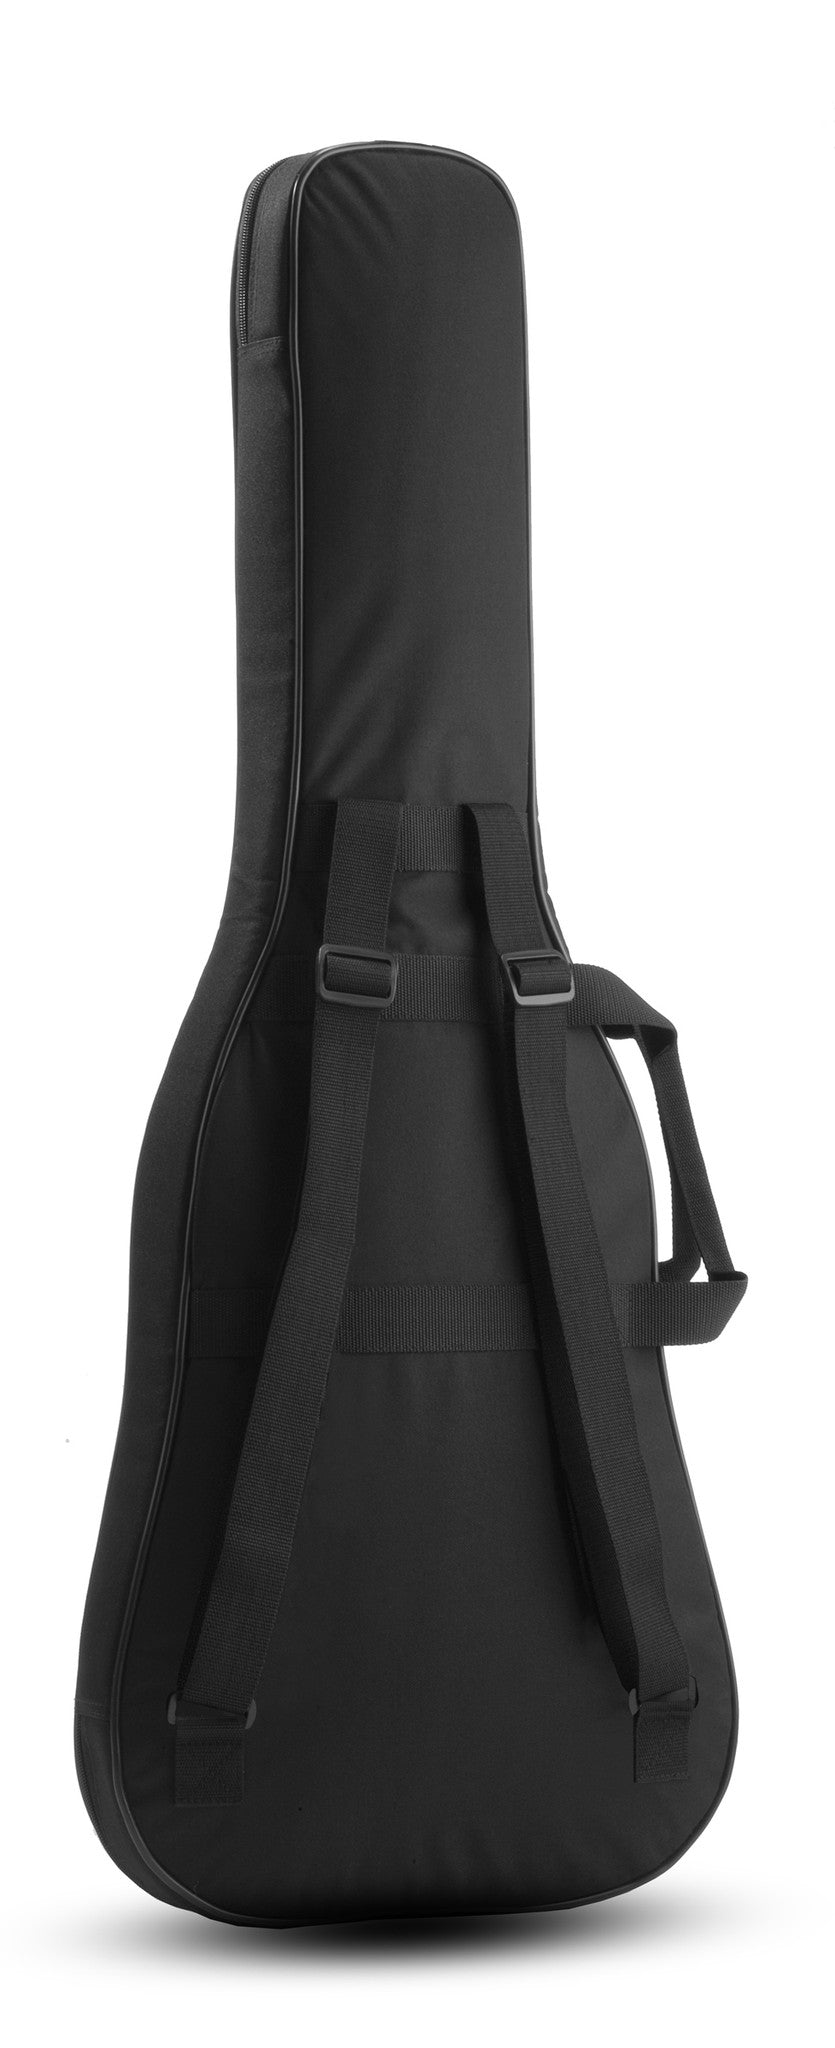 Access ABU341 UpStart 3/4 Acoustic Guitar Bag